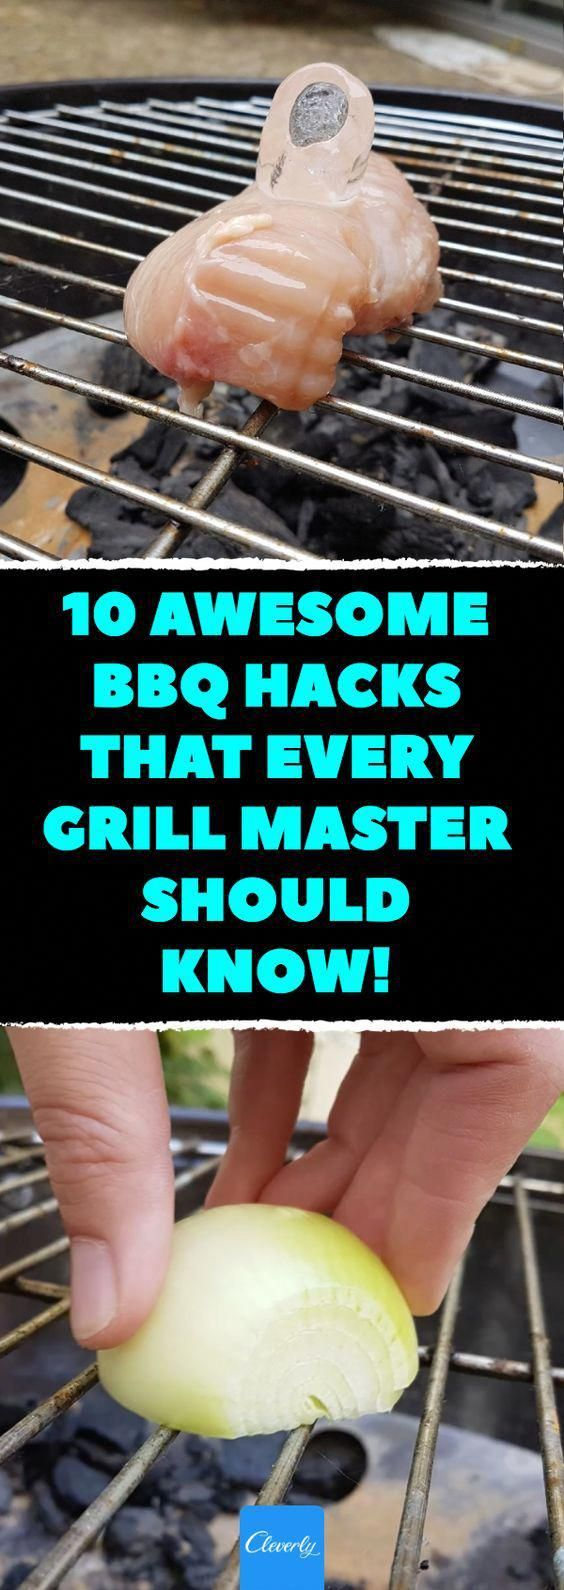 10 awesome BBQ hacks that every grill master should know From cleaning the grill to cooking the meat properly Here are this summers best barbecue tips